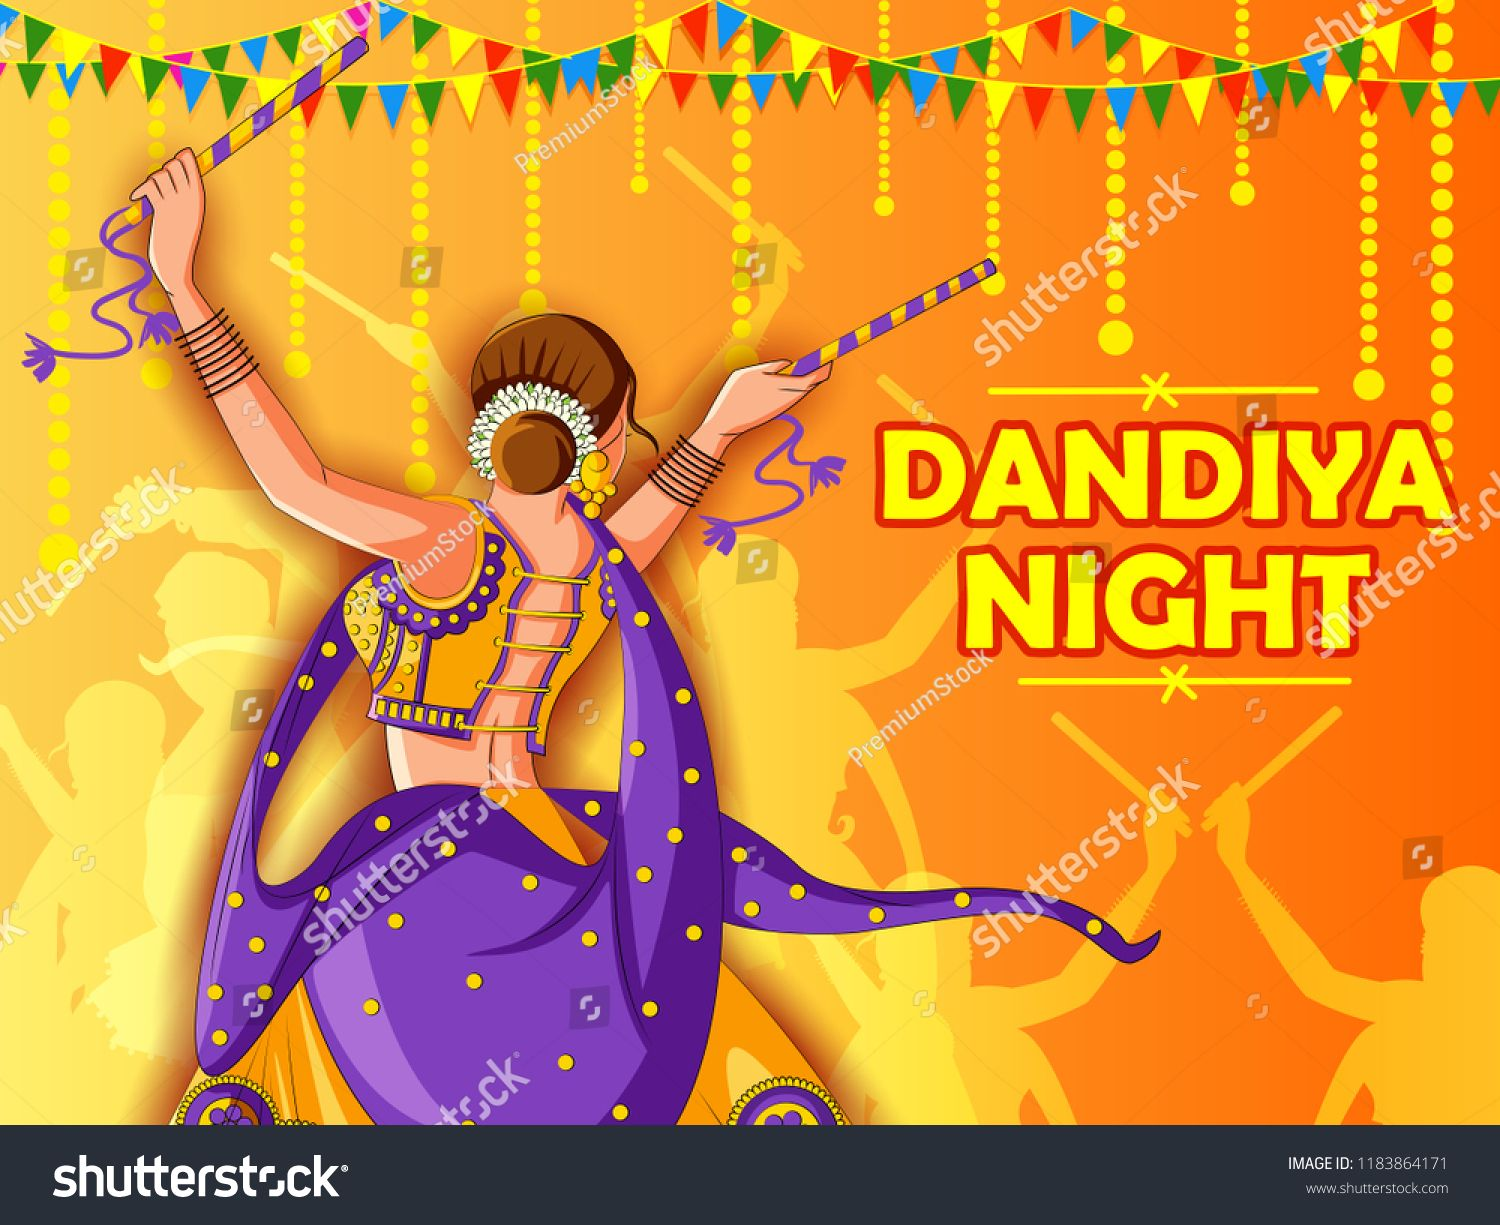 Vector Design Of Indian Woman Playing Garba In Dandiya Night Navratri Dussehra Festival Of Indiawoma Vector Design Floral Invitations Template Indian Festivals